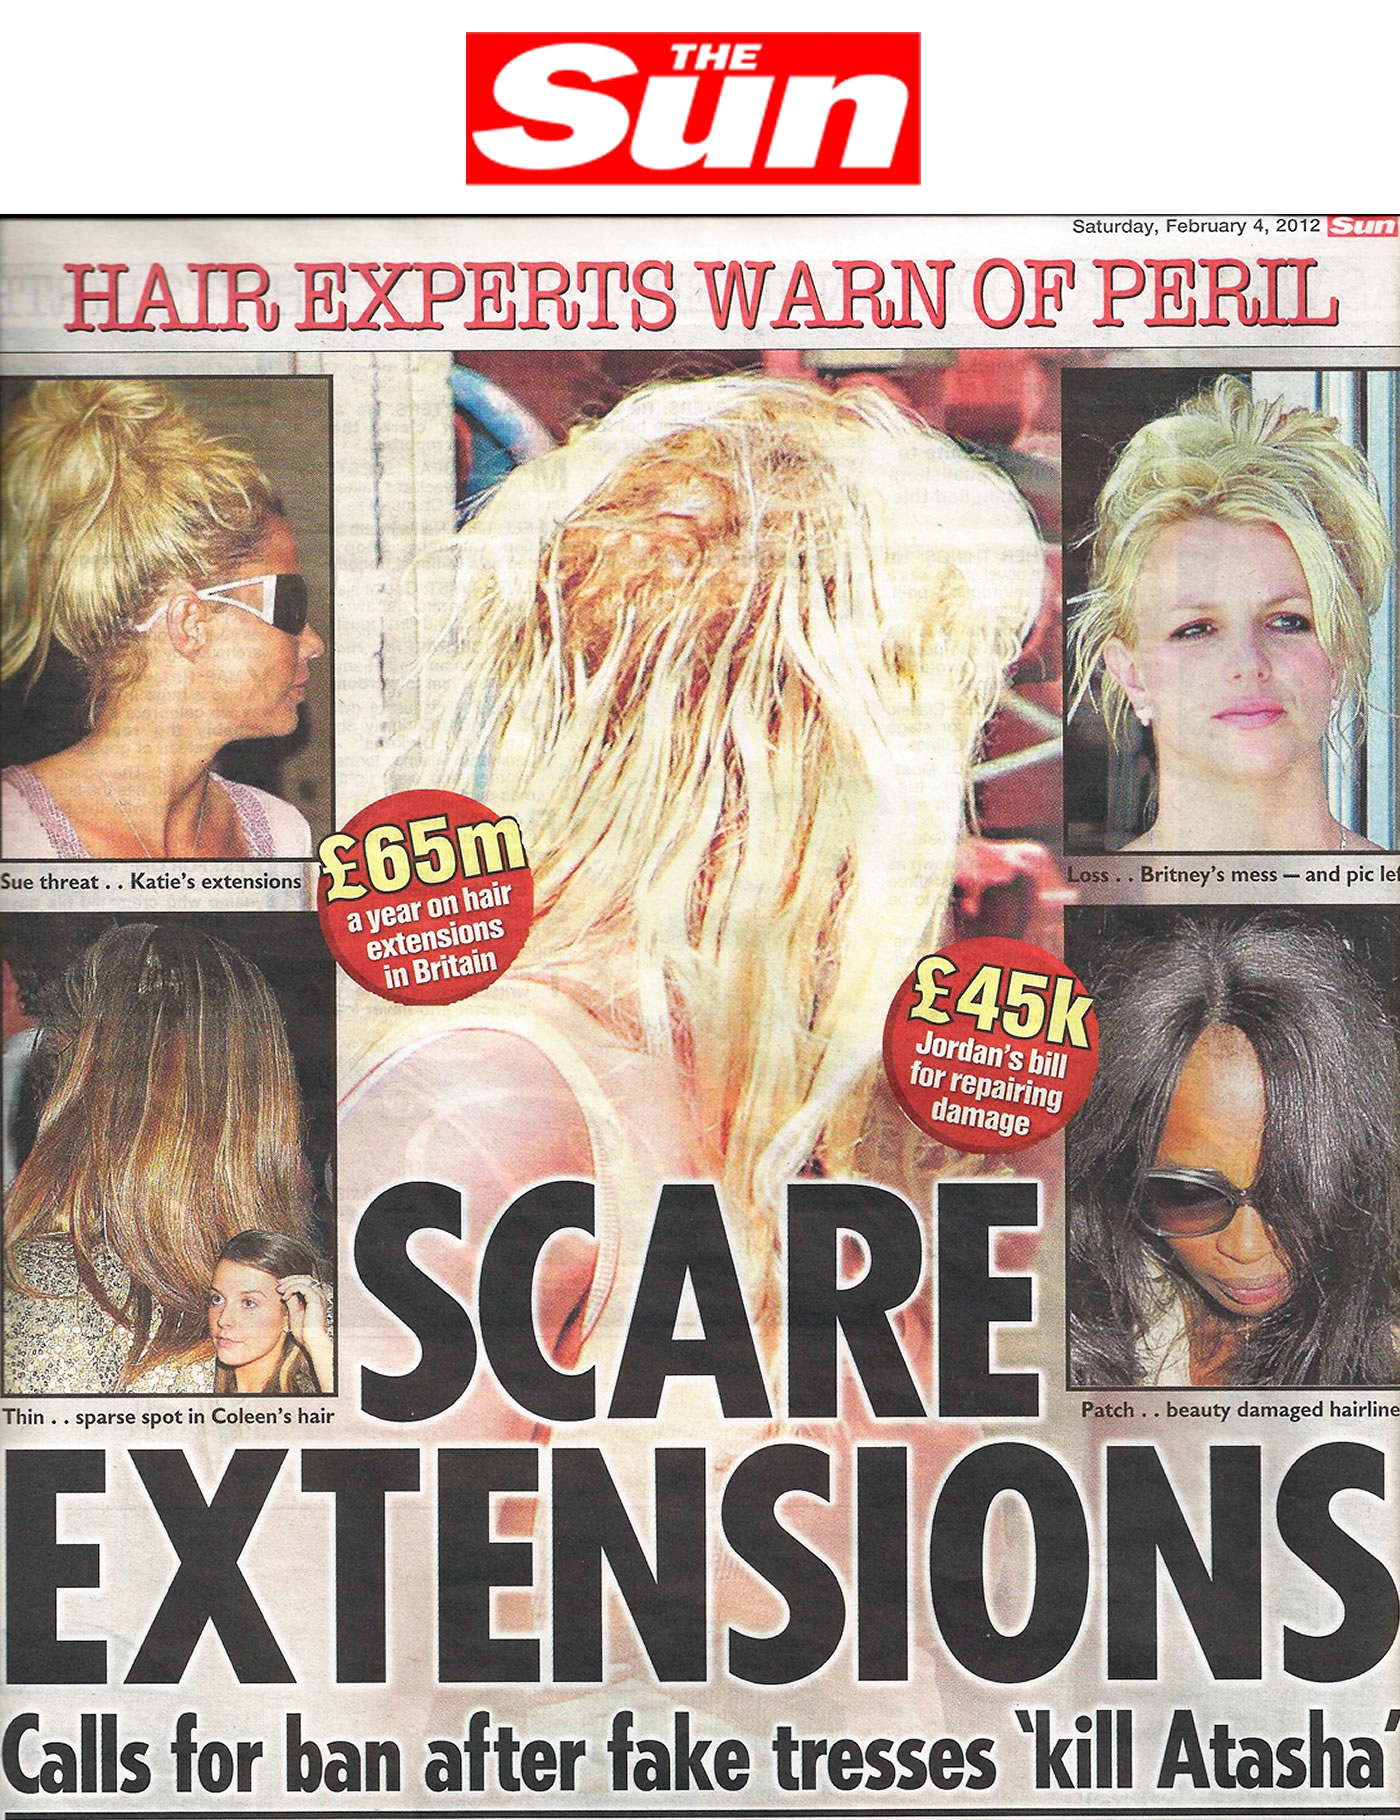 'Scare Extensions - calls for ban after glue 'kills' girl' - The Sun & others